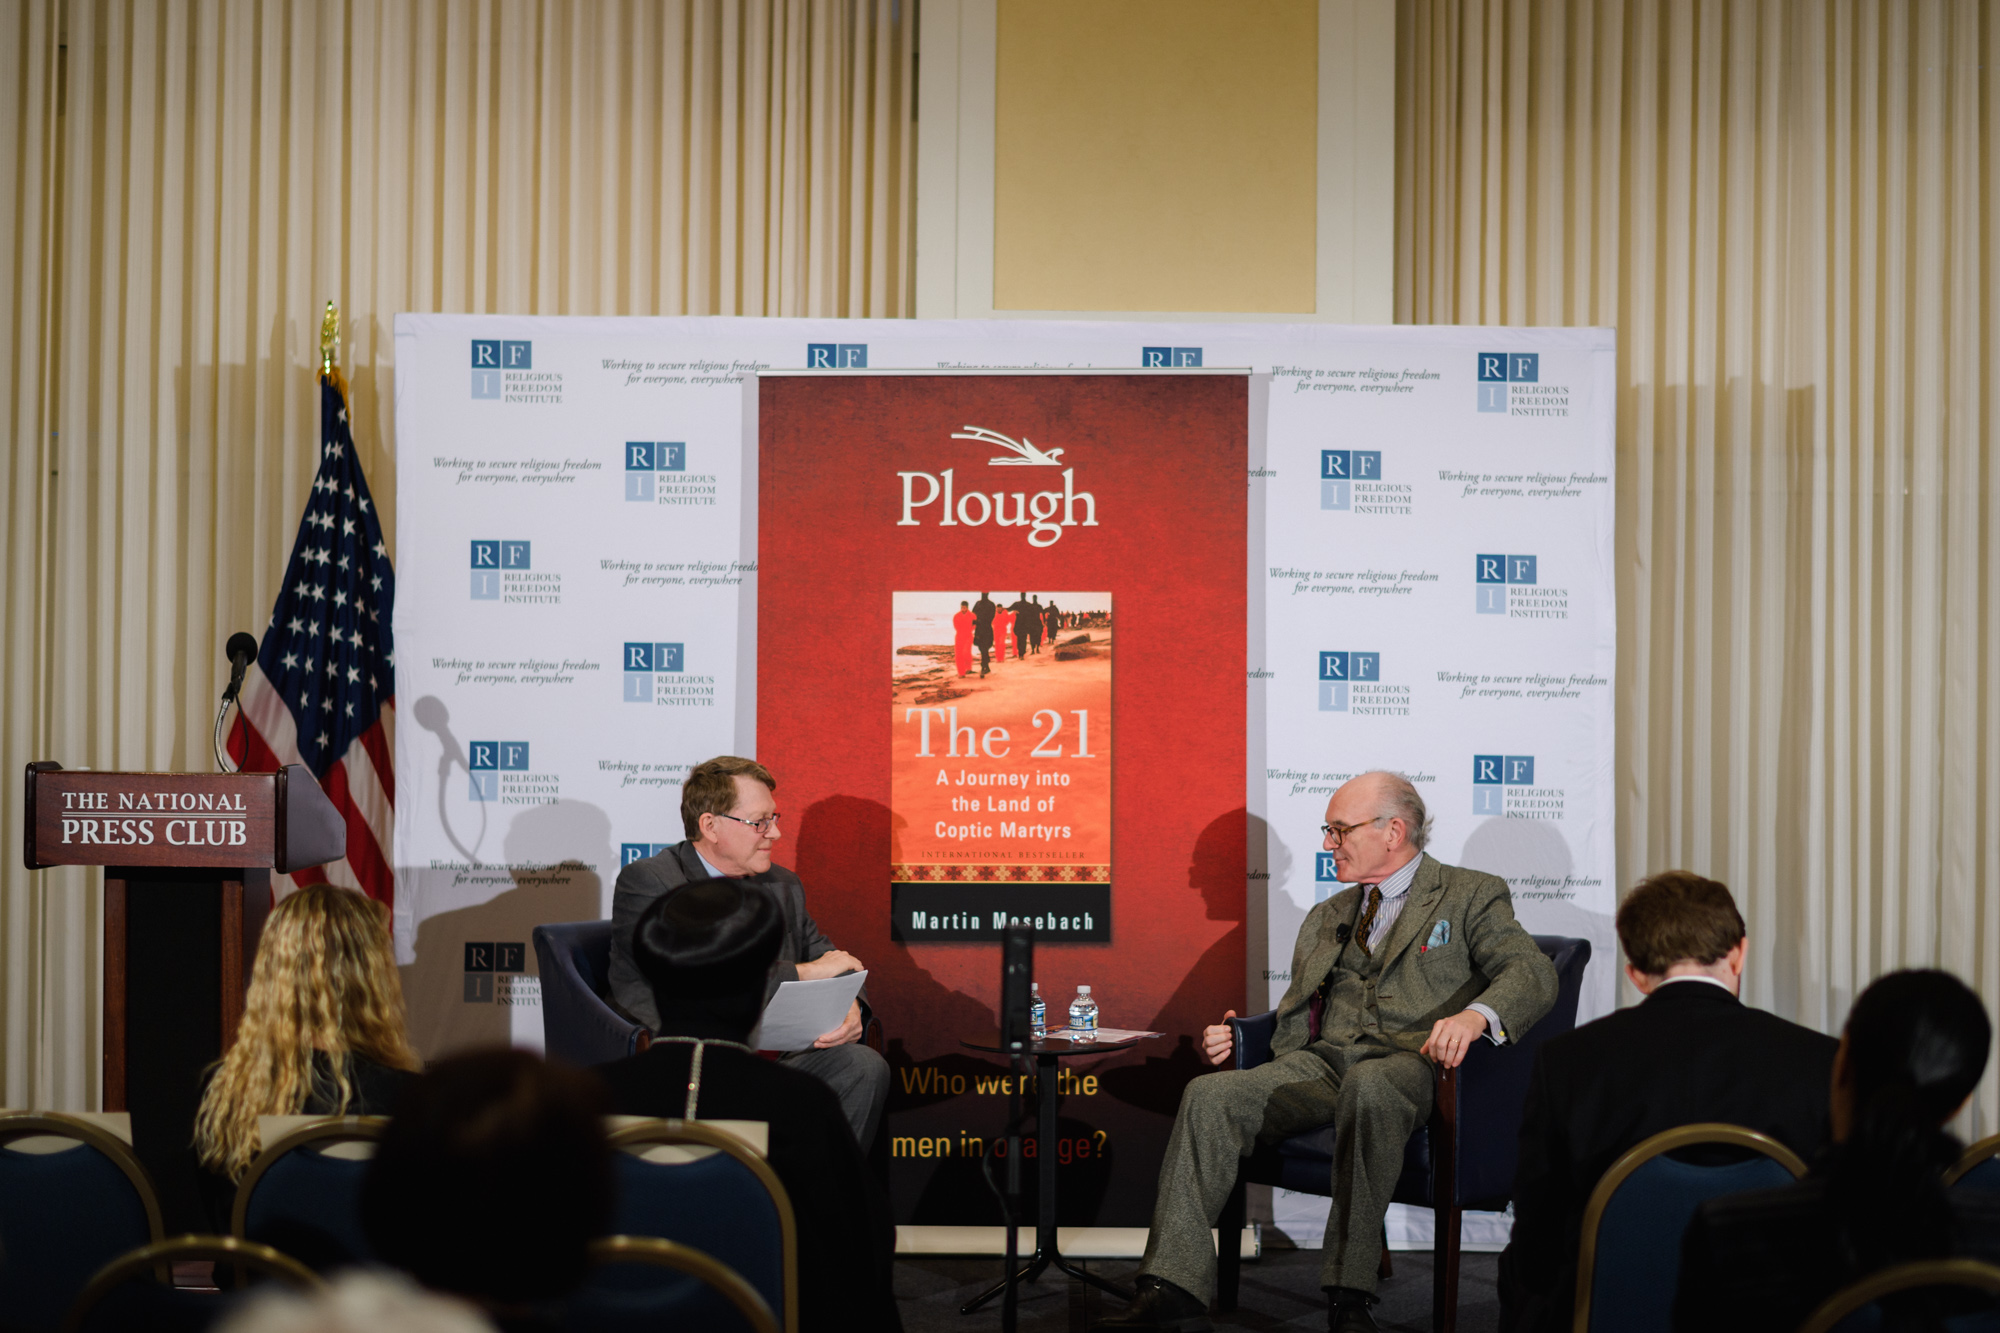 029 - February 12th 2019 Religious Freedom Institute at National Press Club - Photo Nathan Mitchell.jpg